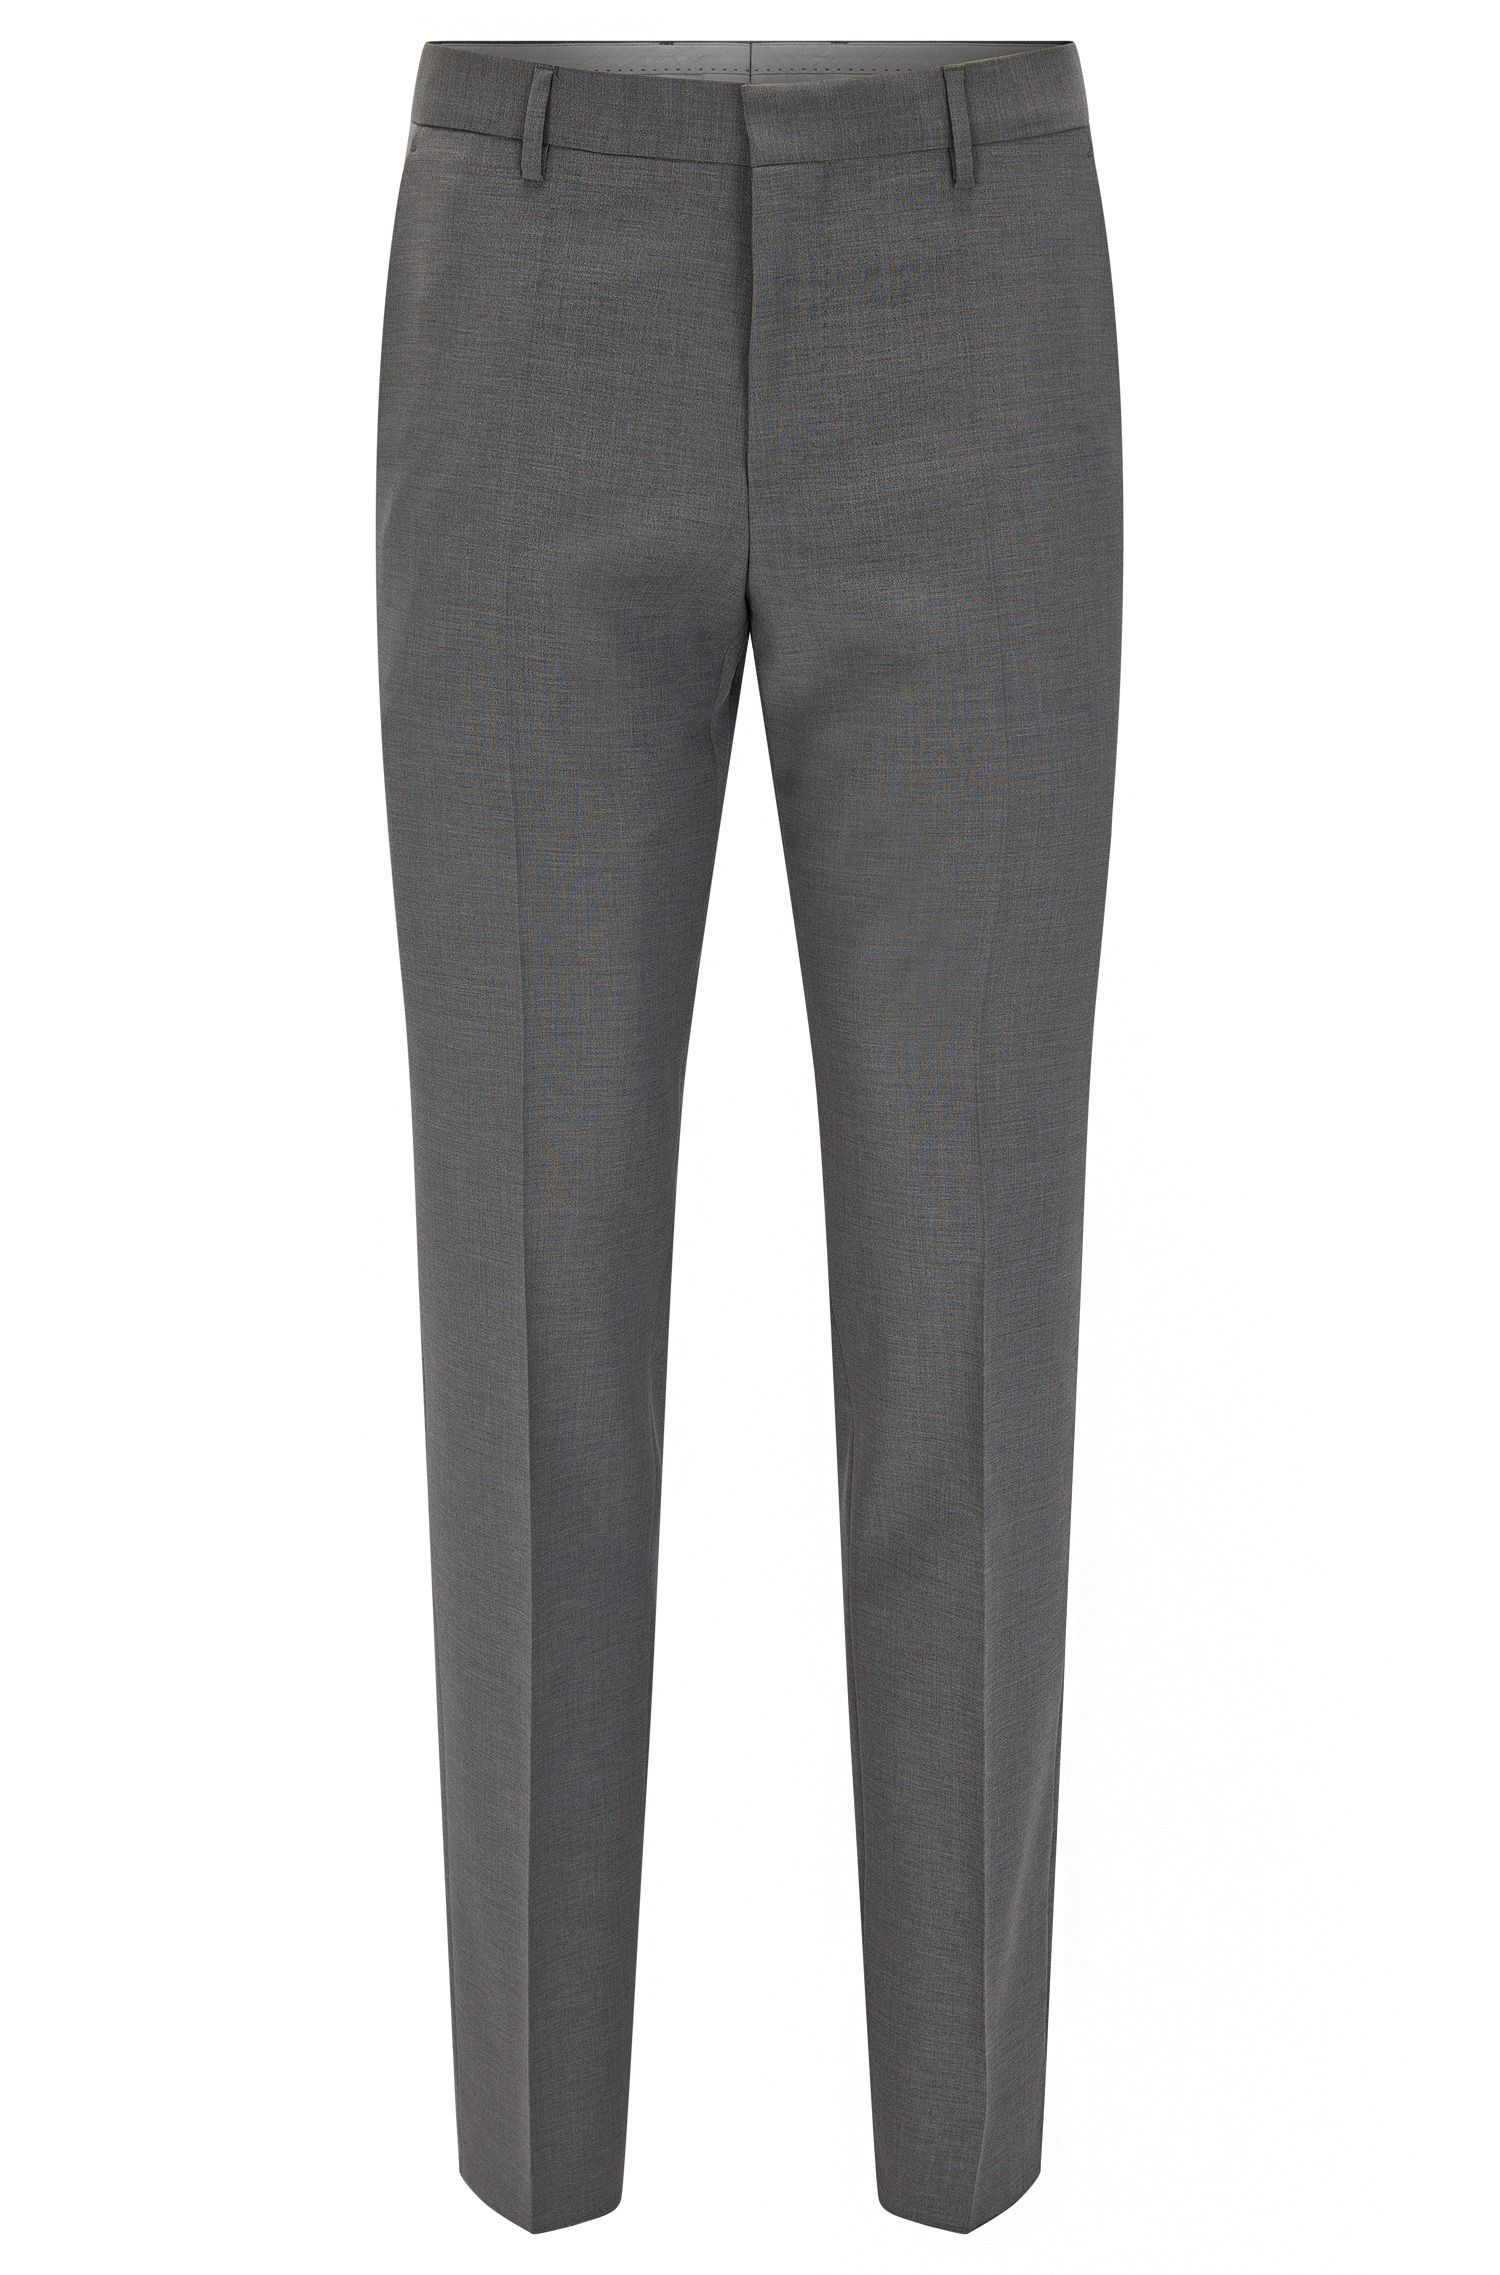 Virgin Wool Dress Pant, Slim Fit | Balte